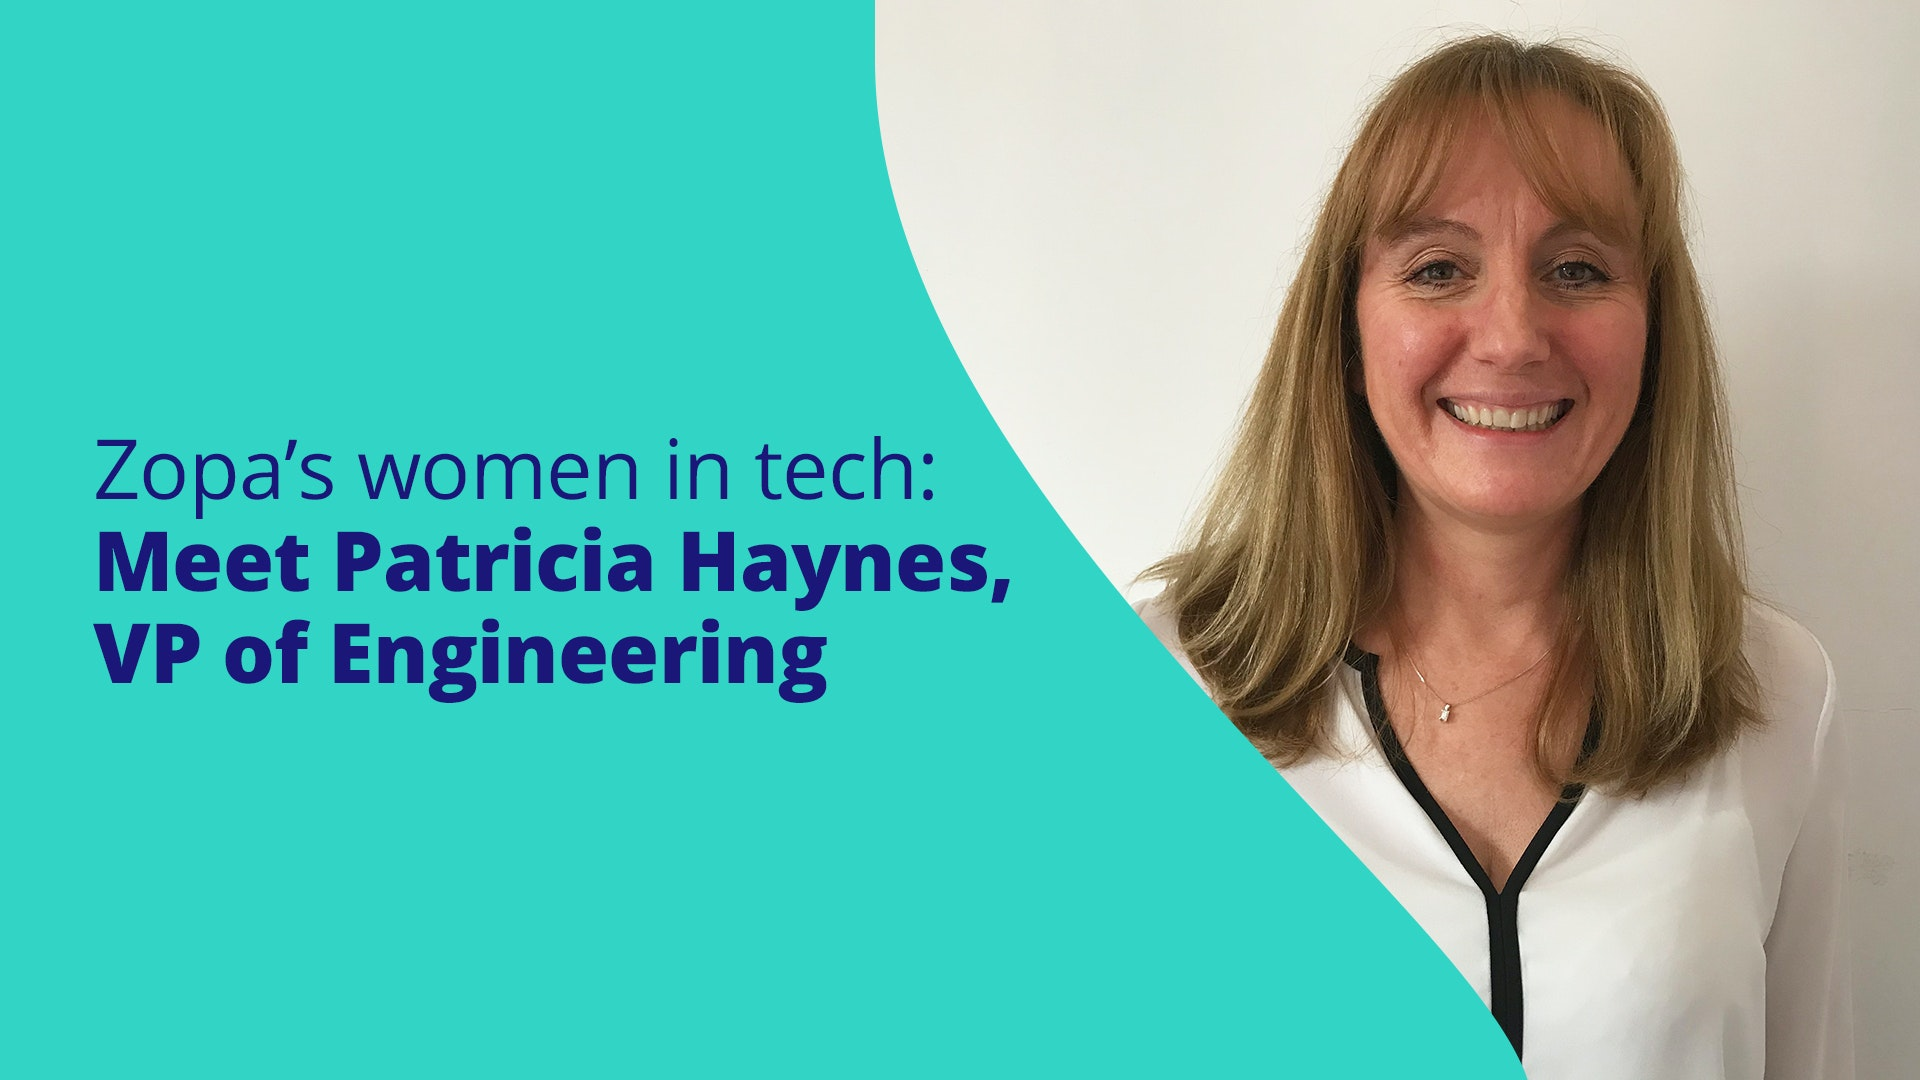 Featured image for Zopa's women in tech: Meet Patricia Haynes, VP of Engineering